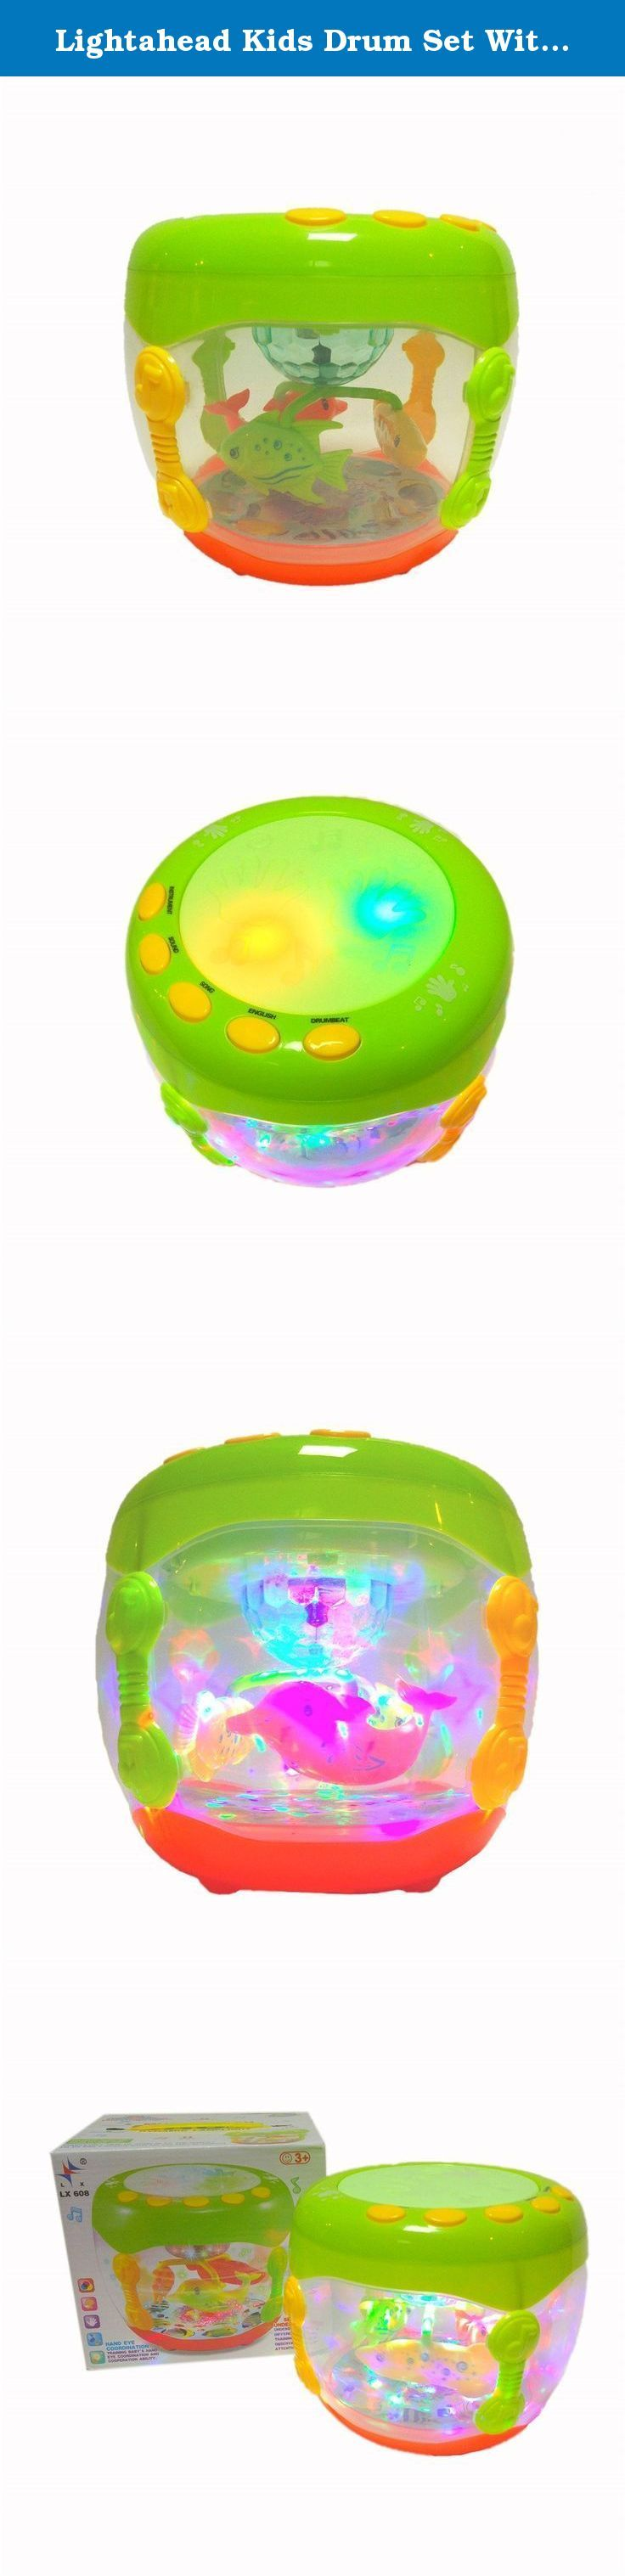 Lightahead Kids Drum Set With Music and Lights Electronic Touch Flash Lights Drum Dynamic Lamplight Toy For Kids and Toddlers GREEN. Lightahead® Electronic Touch Drum, Music Flash Drum Dynamic Lamplight. You know how important learning the fundamentals to your child's future. These basic skills provide your child with the building blocks for success. The drum is great toy and present for your child. This carefully-designed hand drum play tunes and beat of music, allowing your children to...